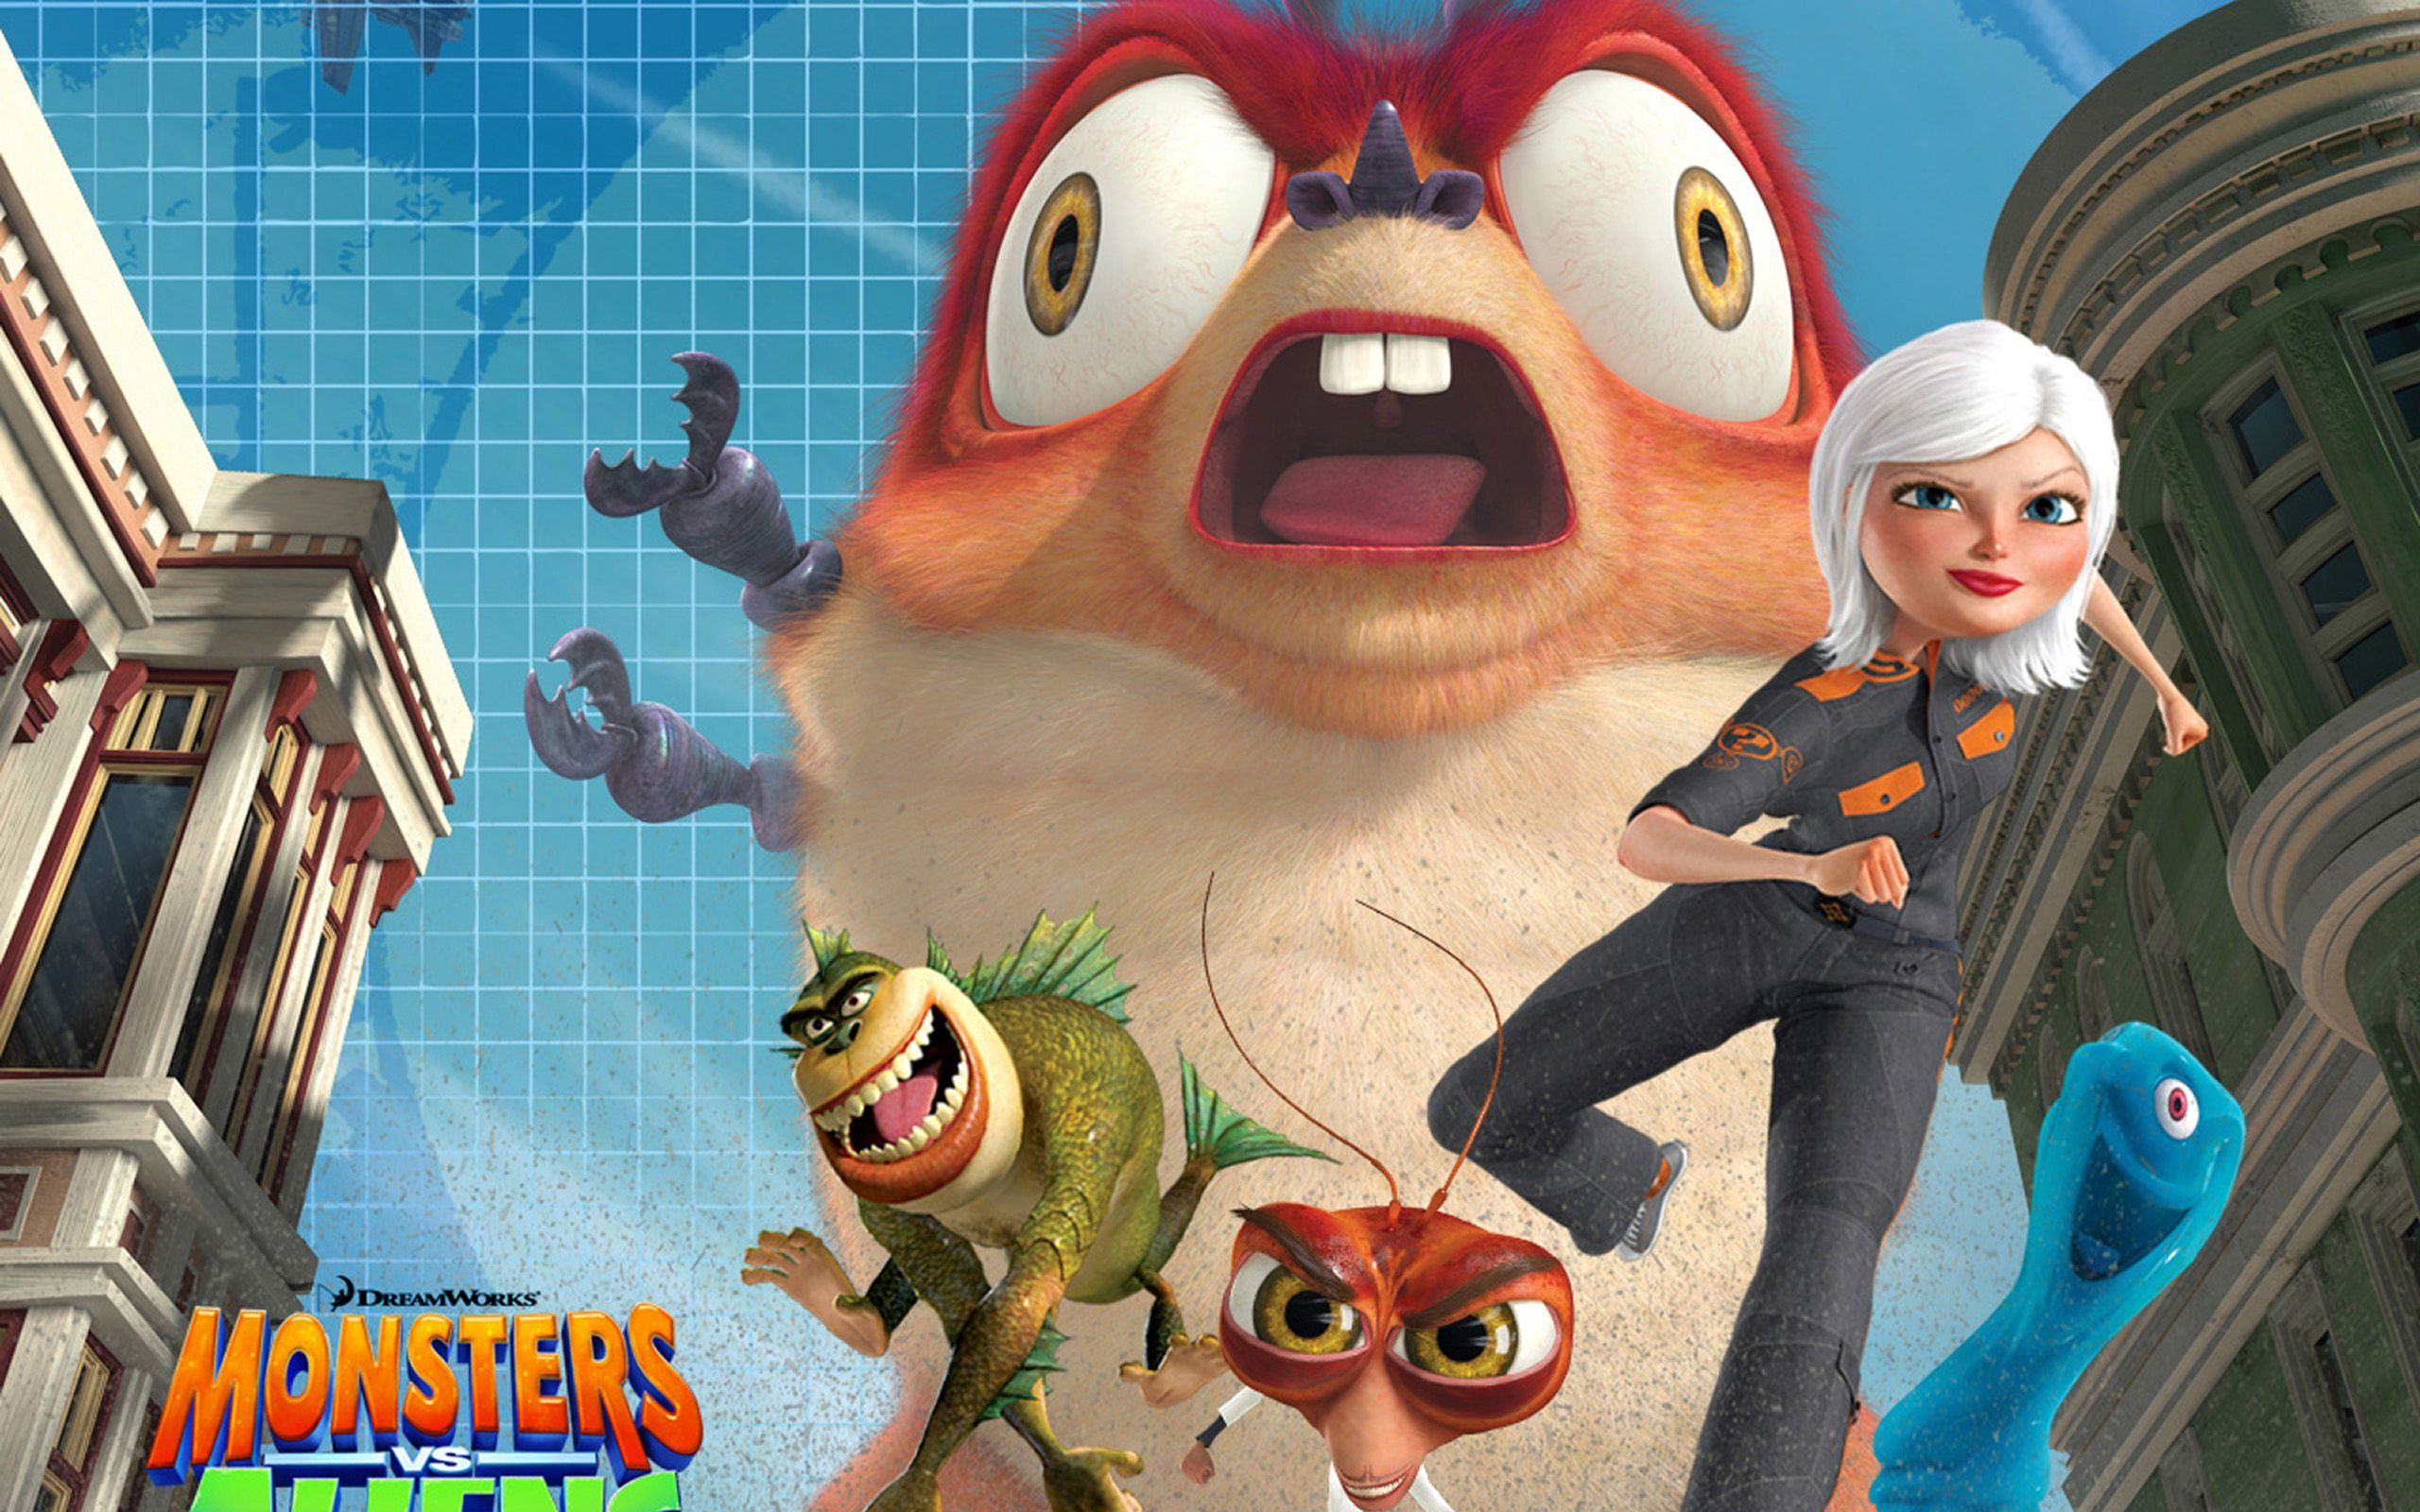 monsters vs aliens full hd wallpaper and background image